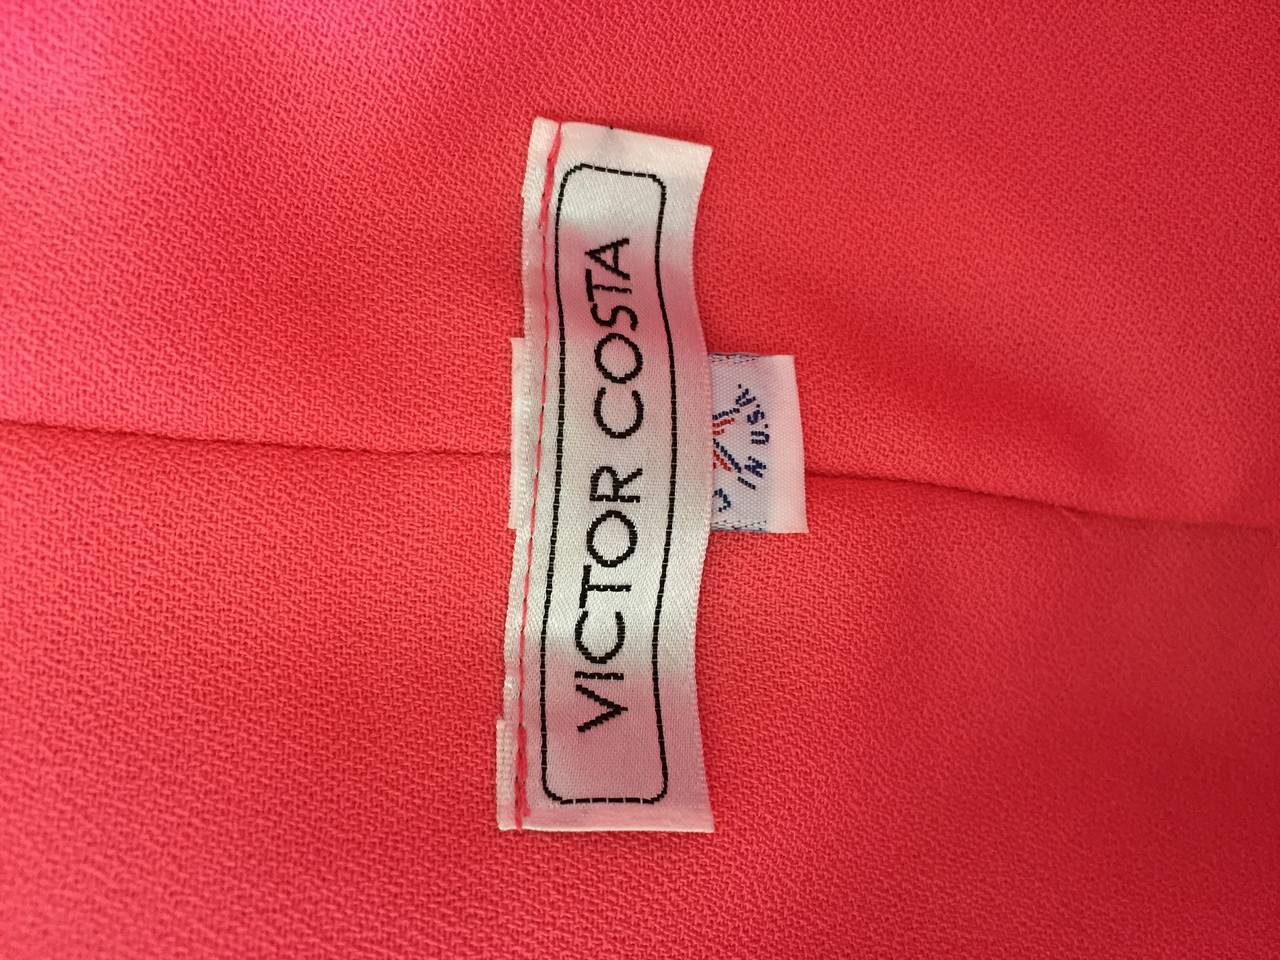 Victor Costa Coral Pink Strapless Flowy Knotted Vintage Cocktail Dress Size 8 10 For Sale 5